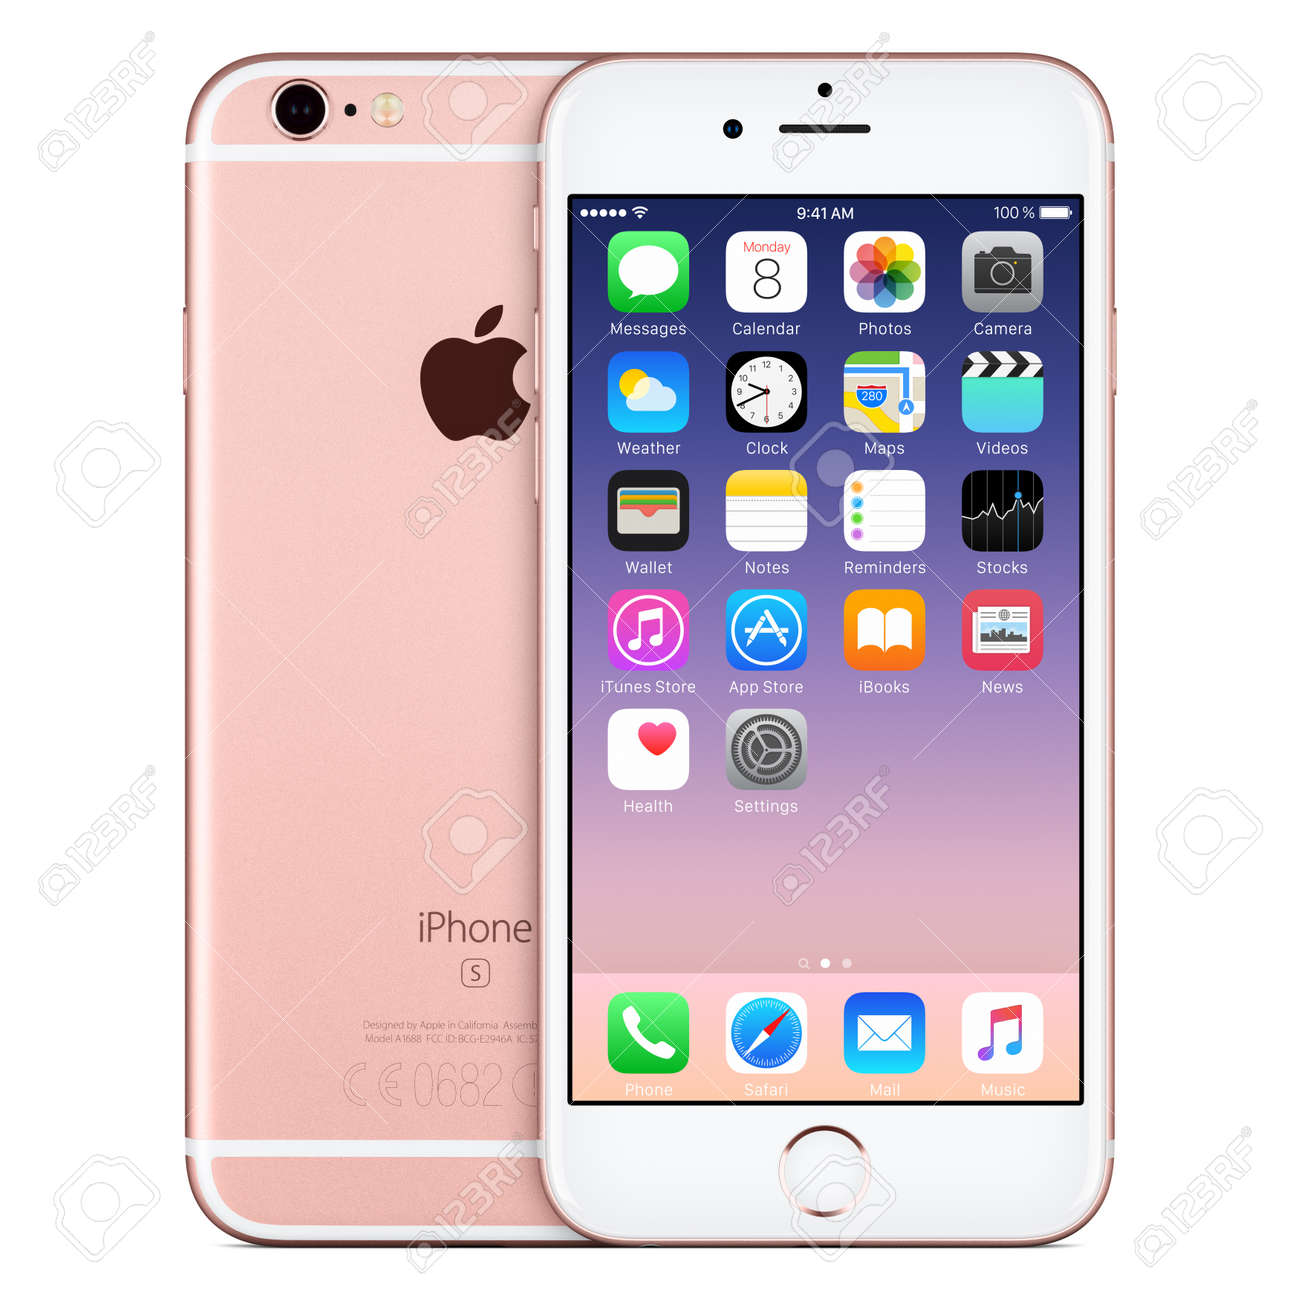 Varna, Bulgaria - October 24, 2015: Front view of Rose Gold Apple iPhone 6S with iOS 9 mobile operating system and back side with Apple Inc logo. Isolated on white. - 51147180